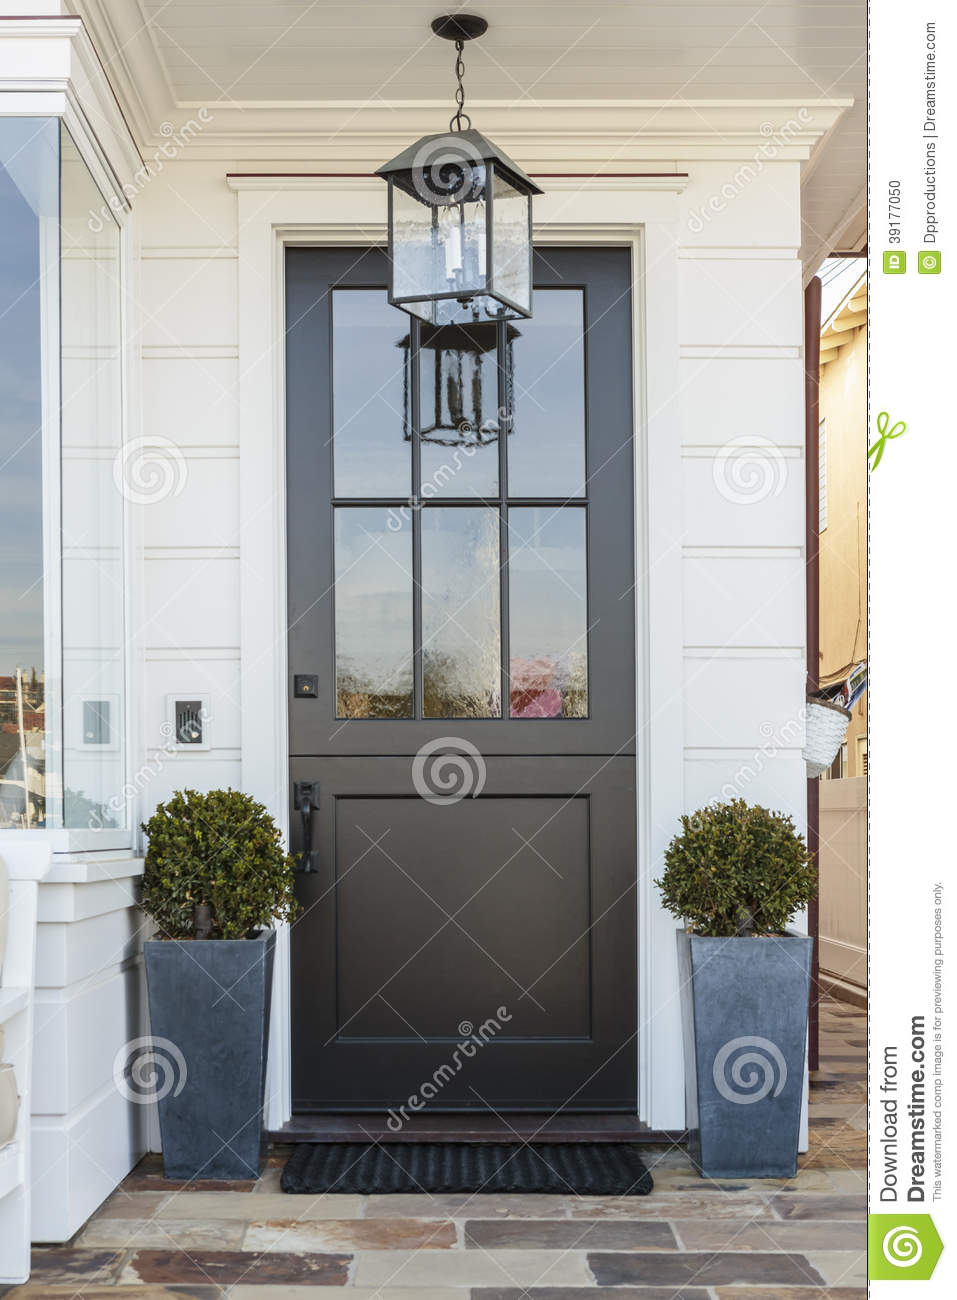 Black Front Door Framed By Plants Stock Photo Image Of Blue